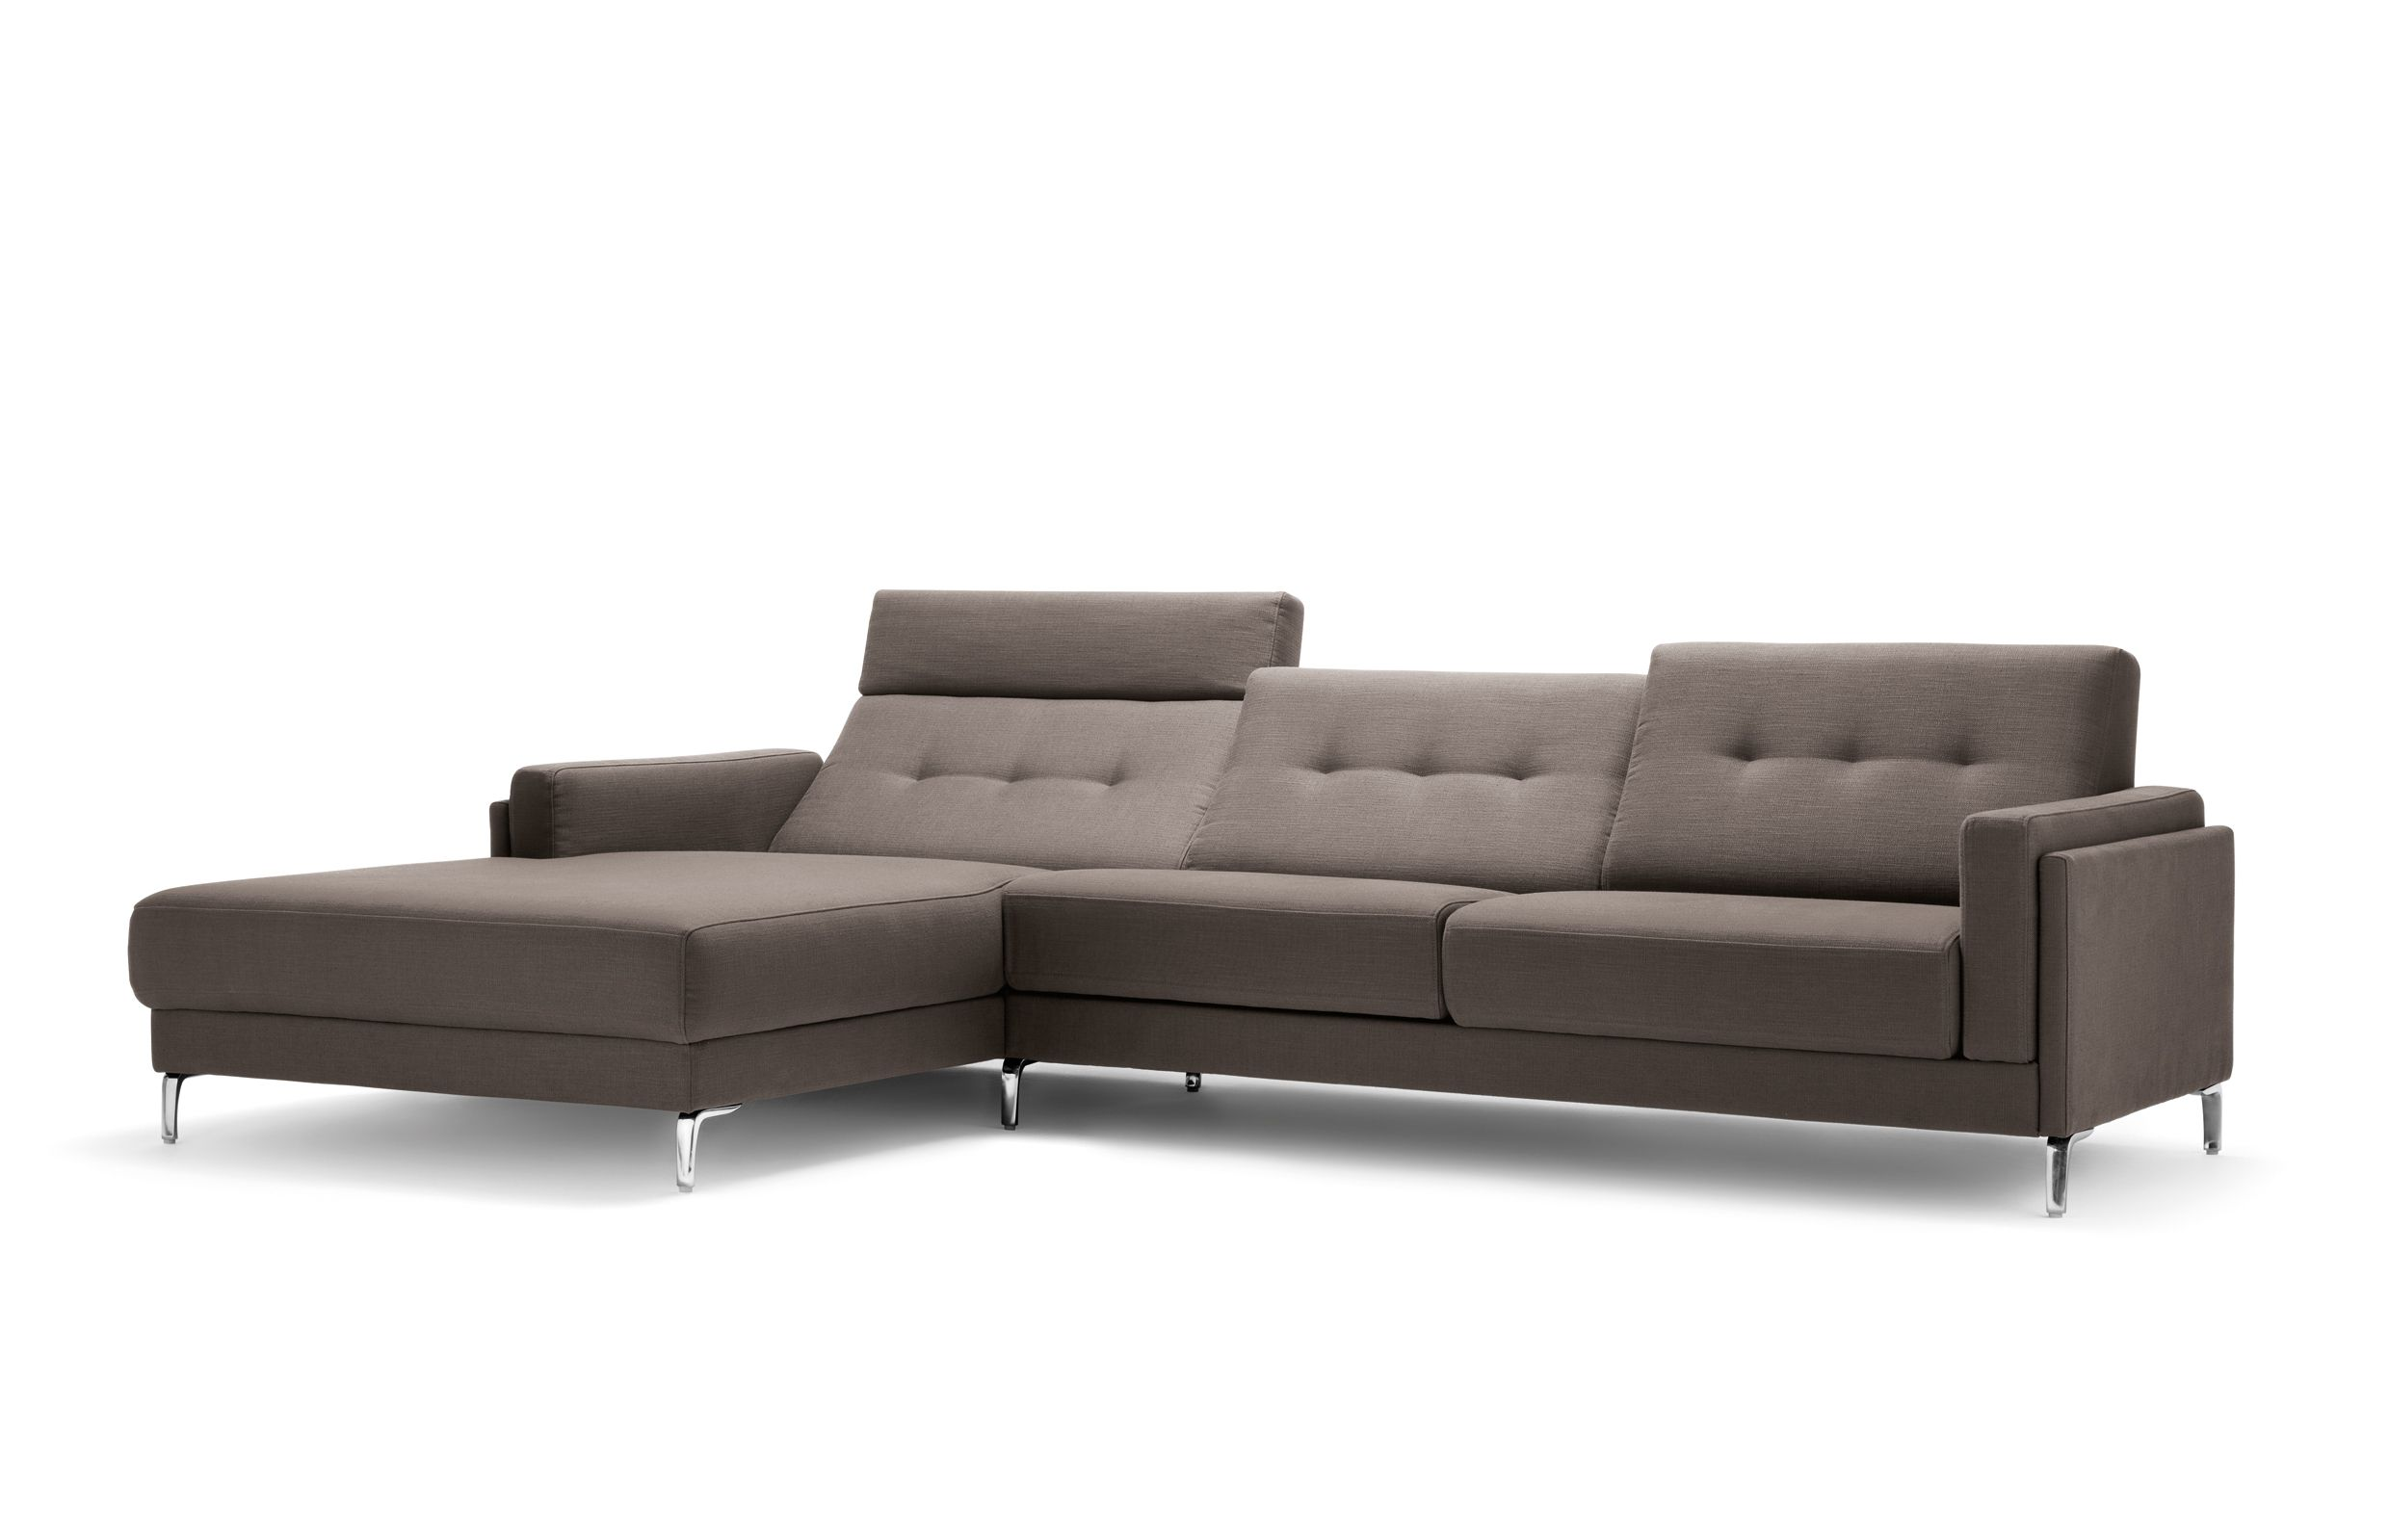 Rolf Benz Studio With Images Sofa Inspiration Sofa Price Sofa